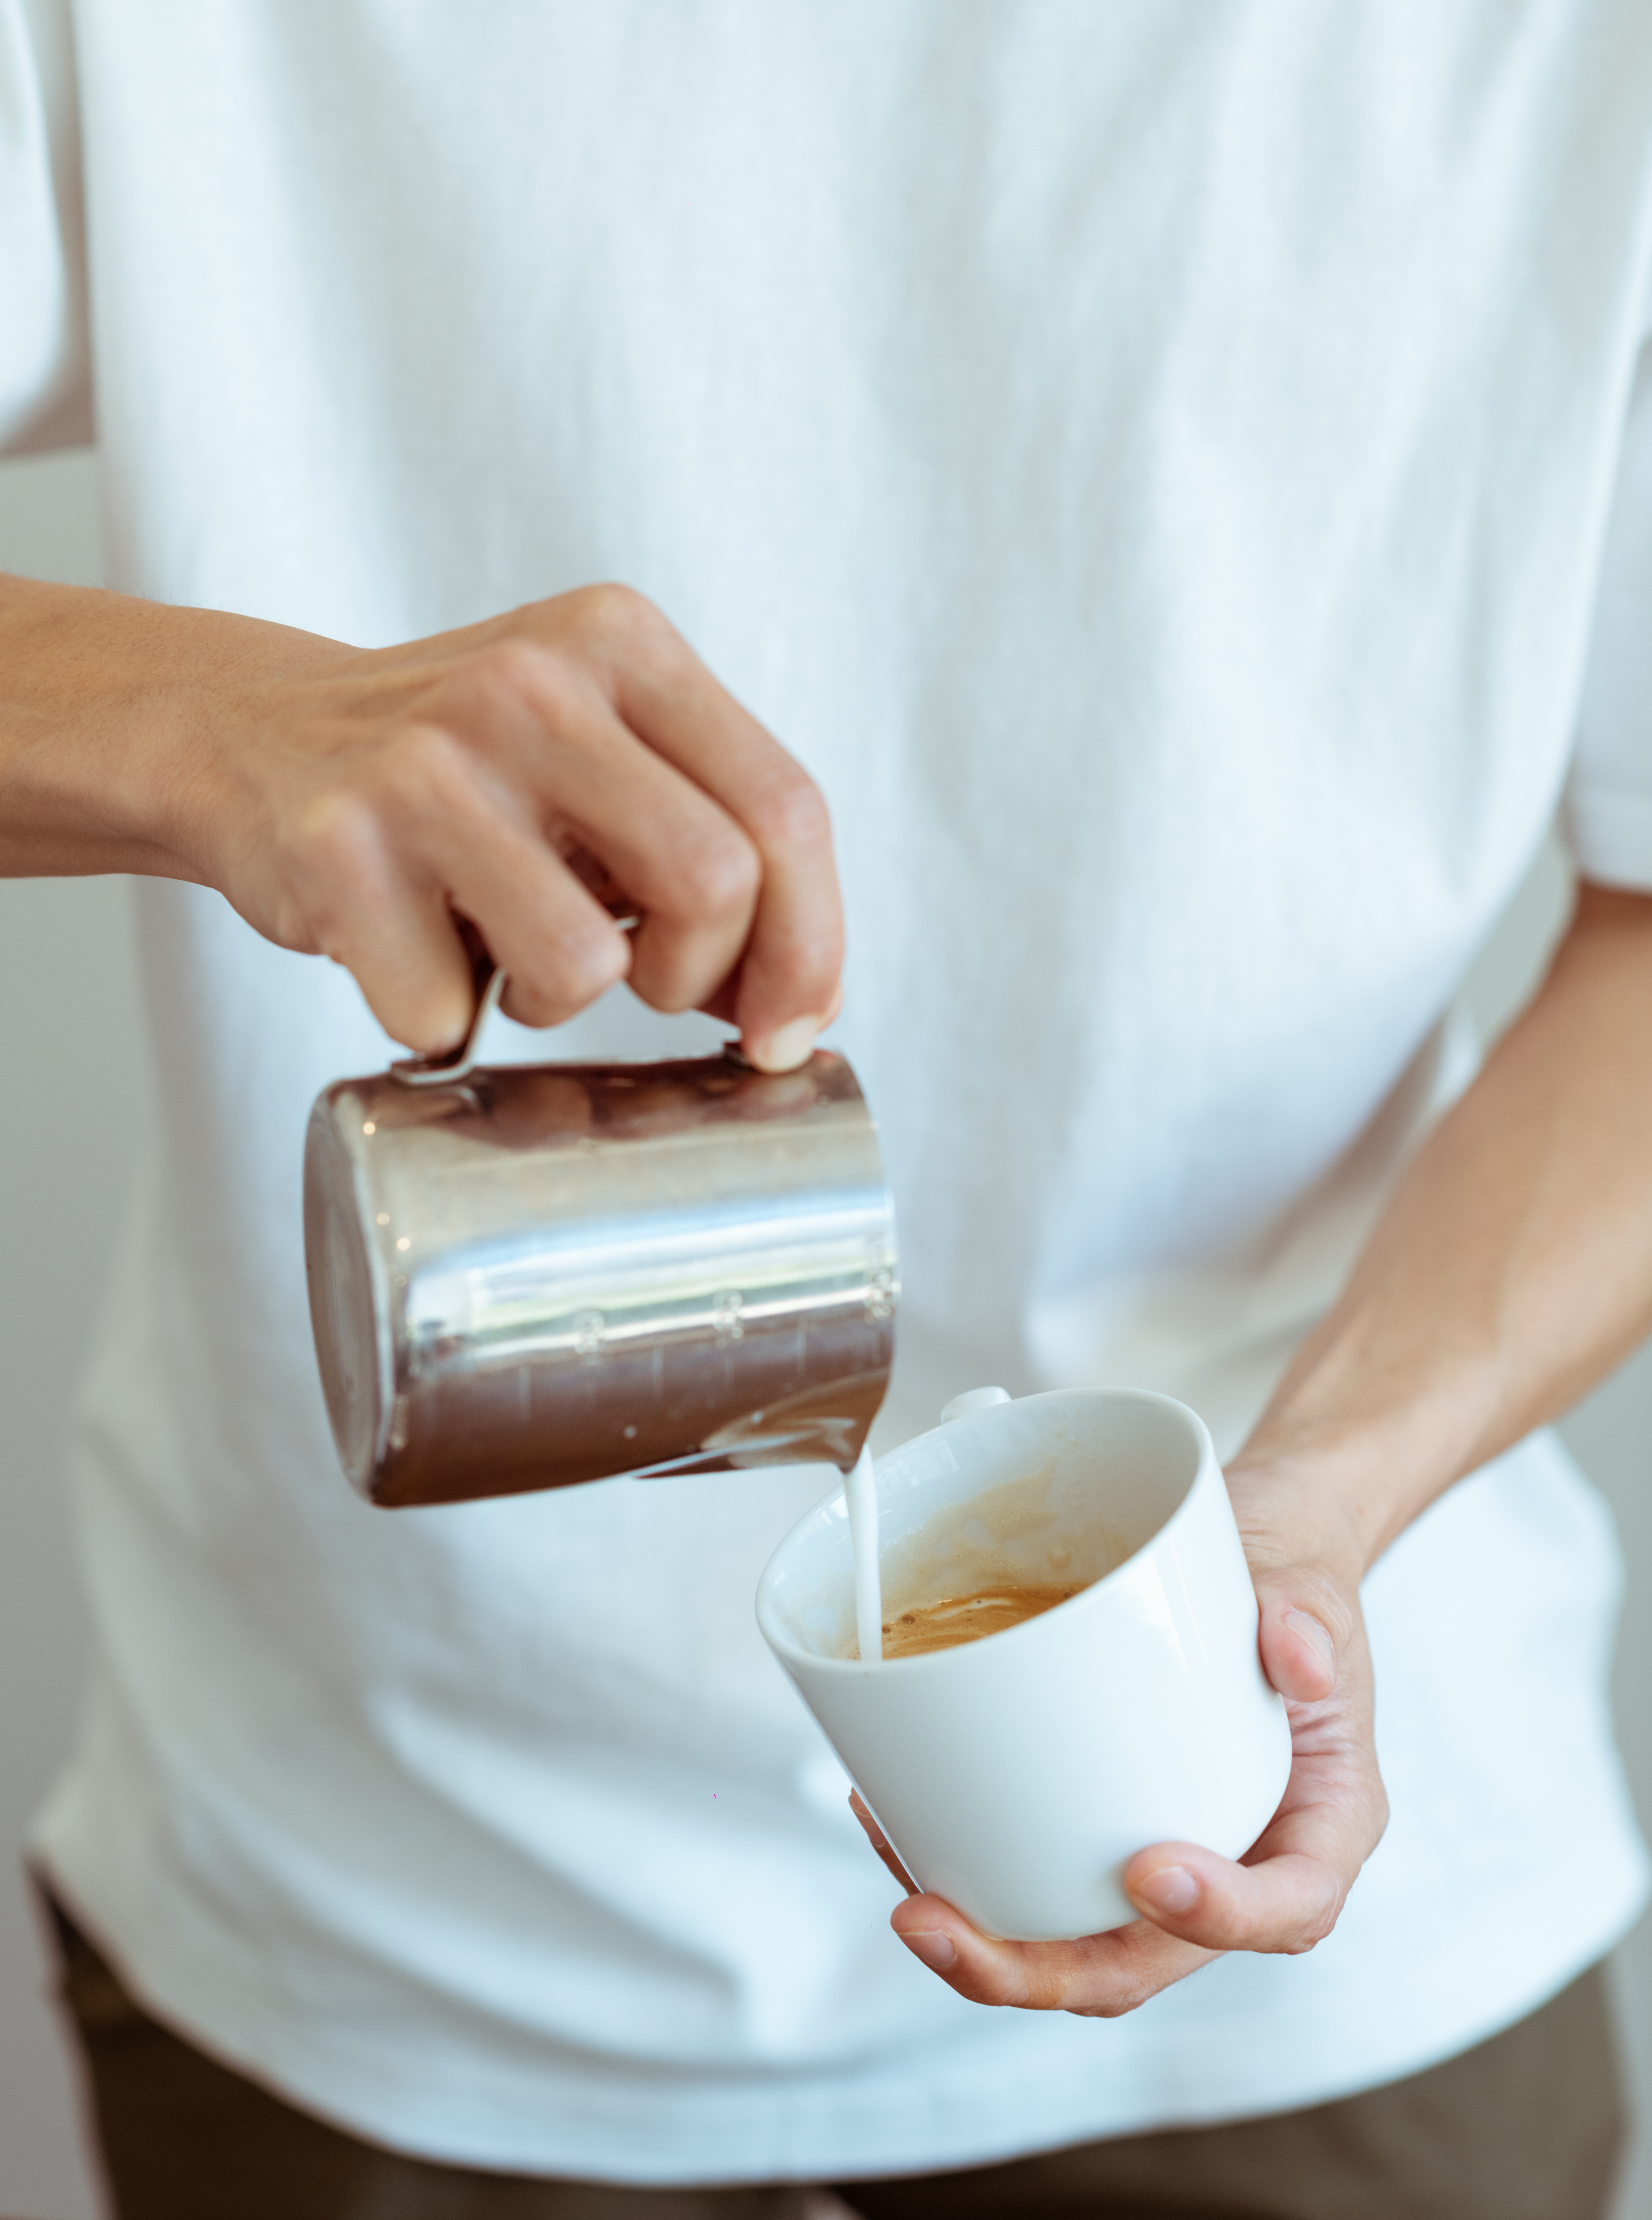 crop barista pouring whipped milk in white coffee cup